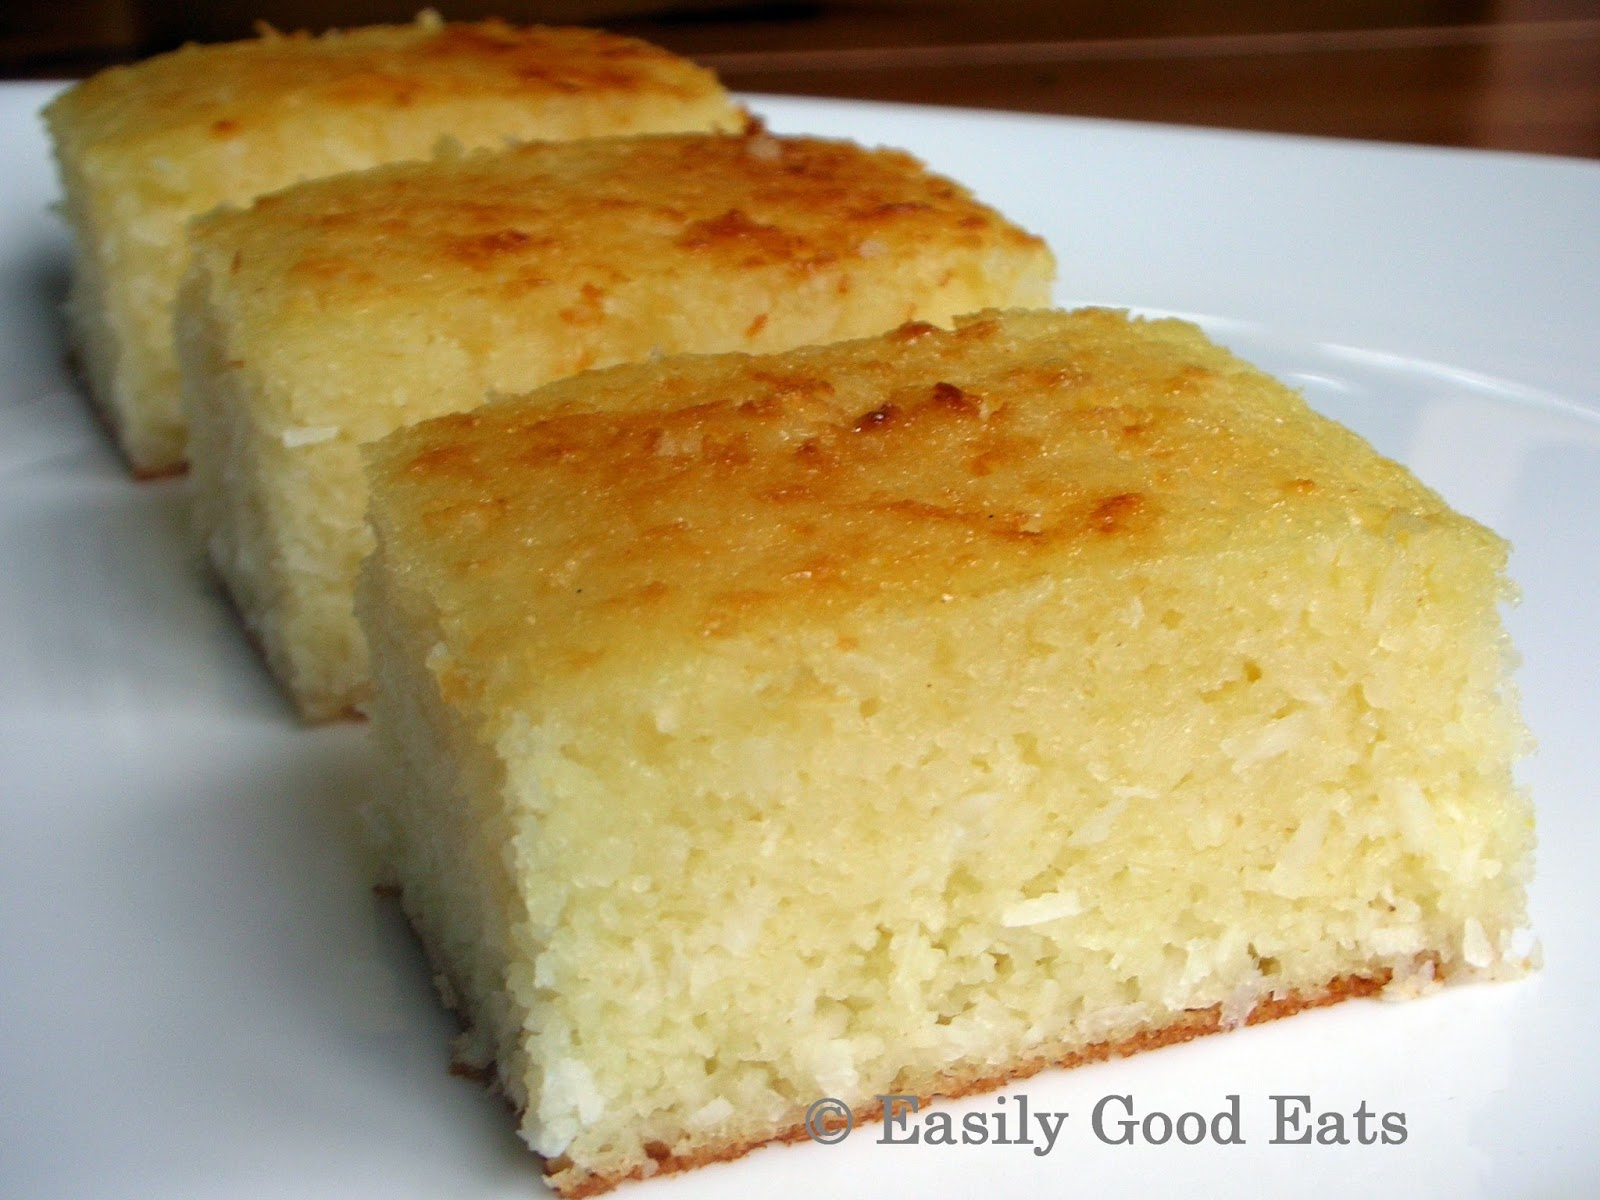 Easily Good Eats: Semolina Yogurt Lemon Coconut Cake Recipe